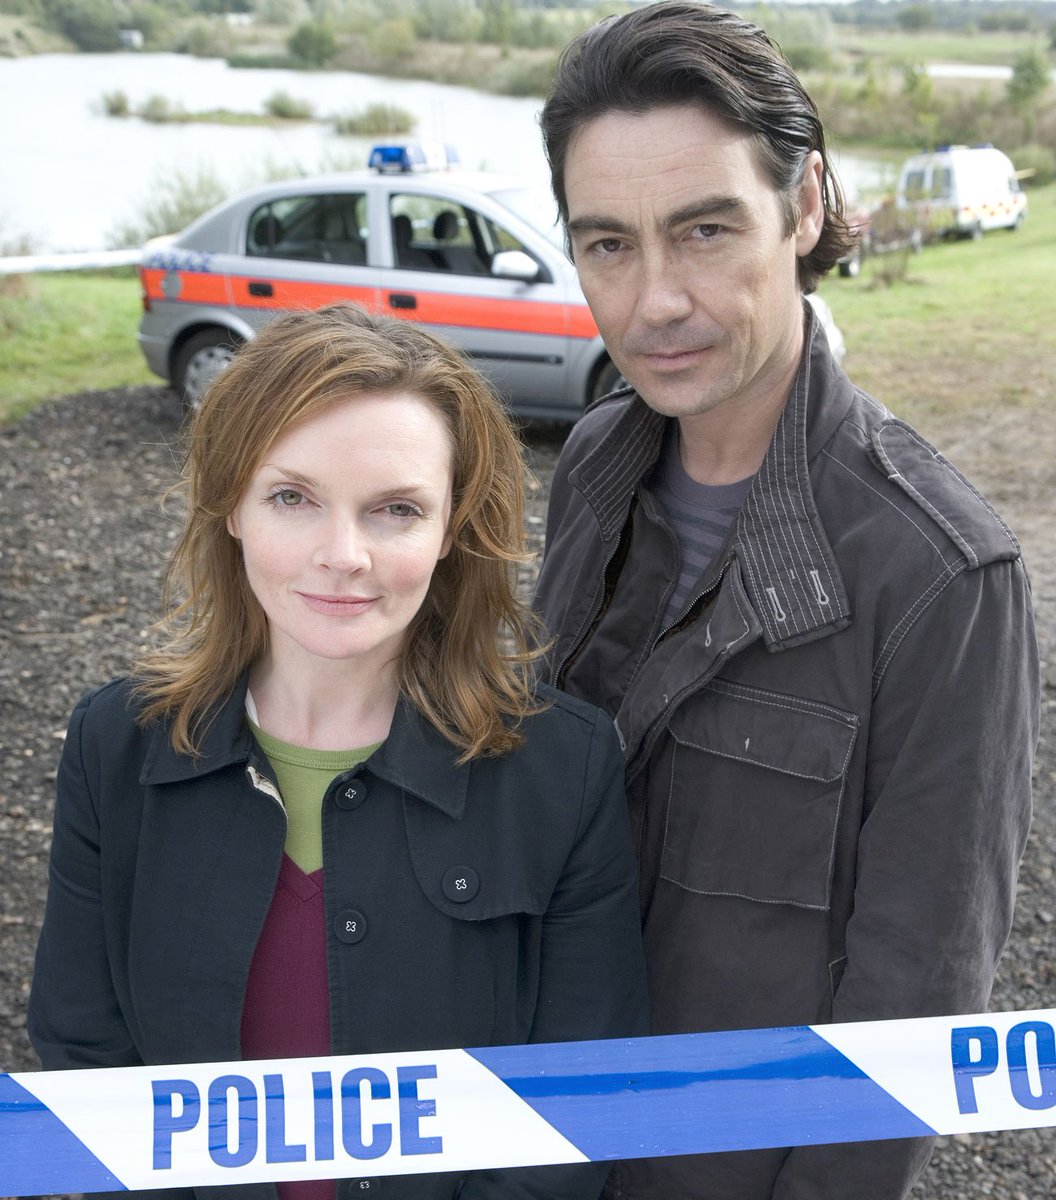 https://www.pbs.org/wgbh/masterpiece/specialfeatures/grantchester-s4-e4-nathaniel-parker-interview/… I love that #NathanielParker & #SharonSmall are friends #InspectorLynleypic.twitter.com/OjCZWaoMvP